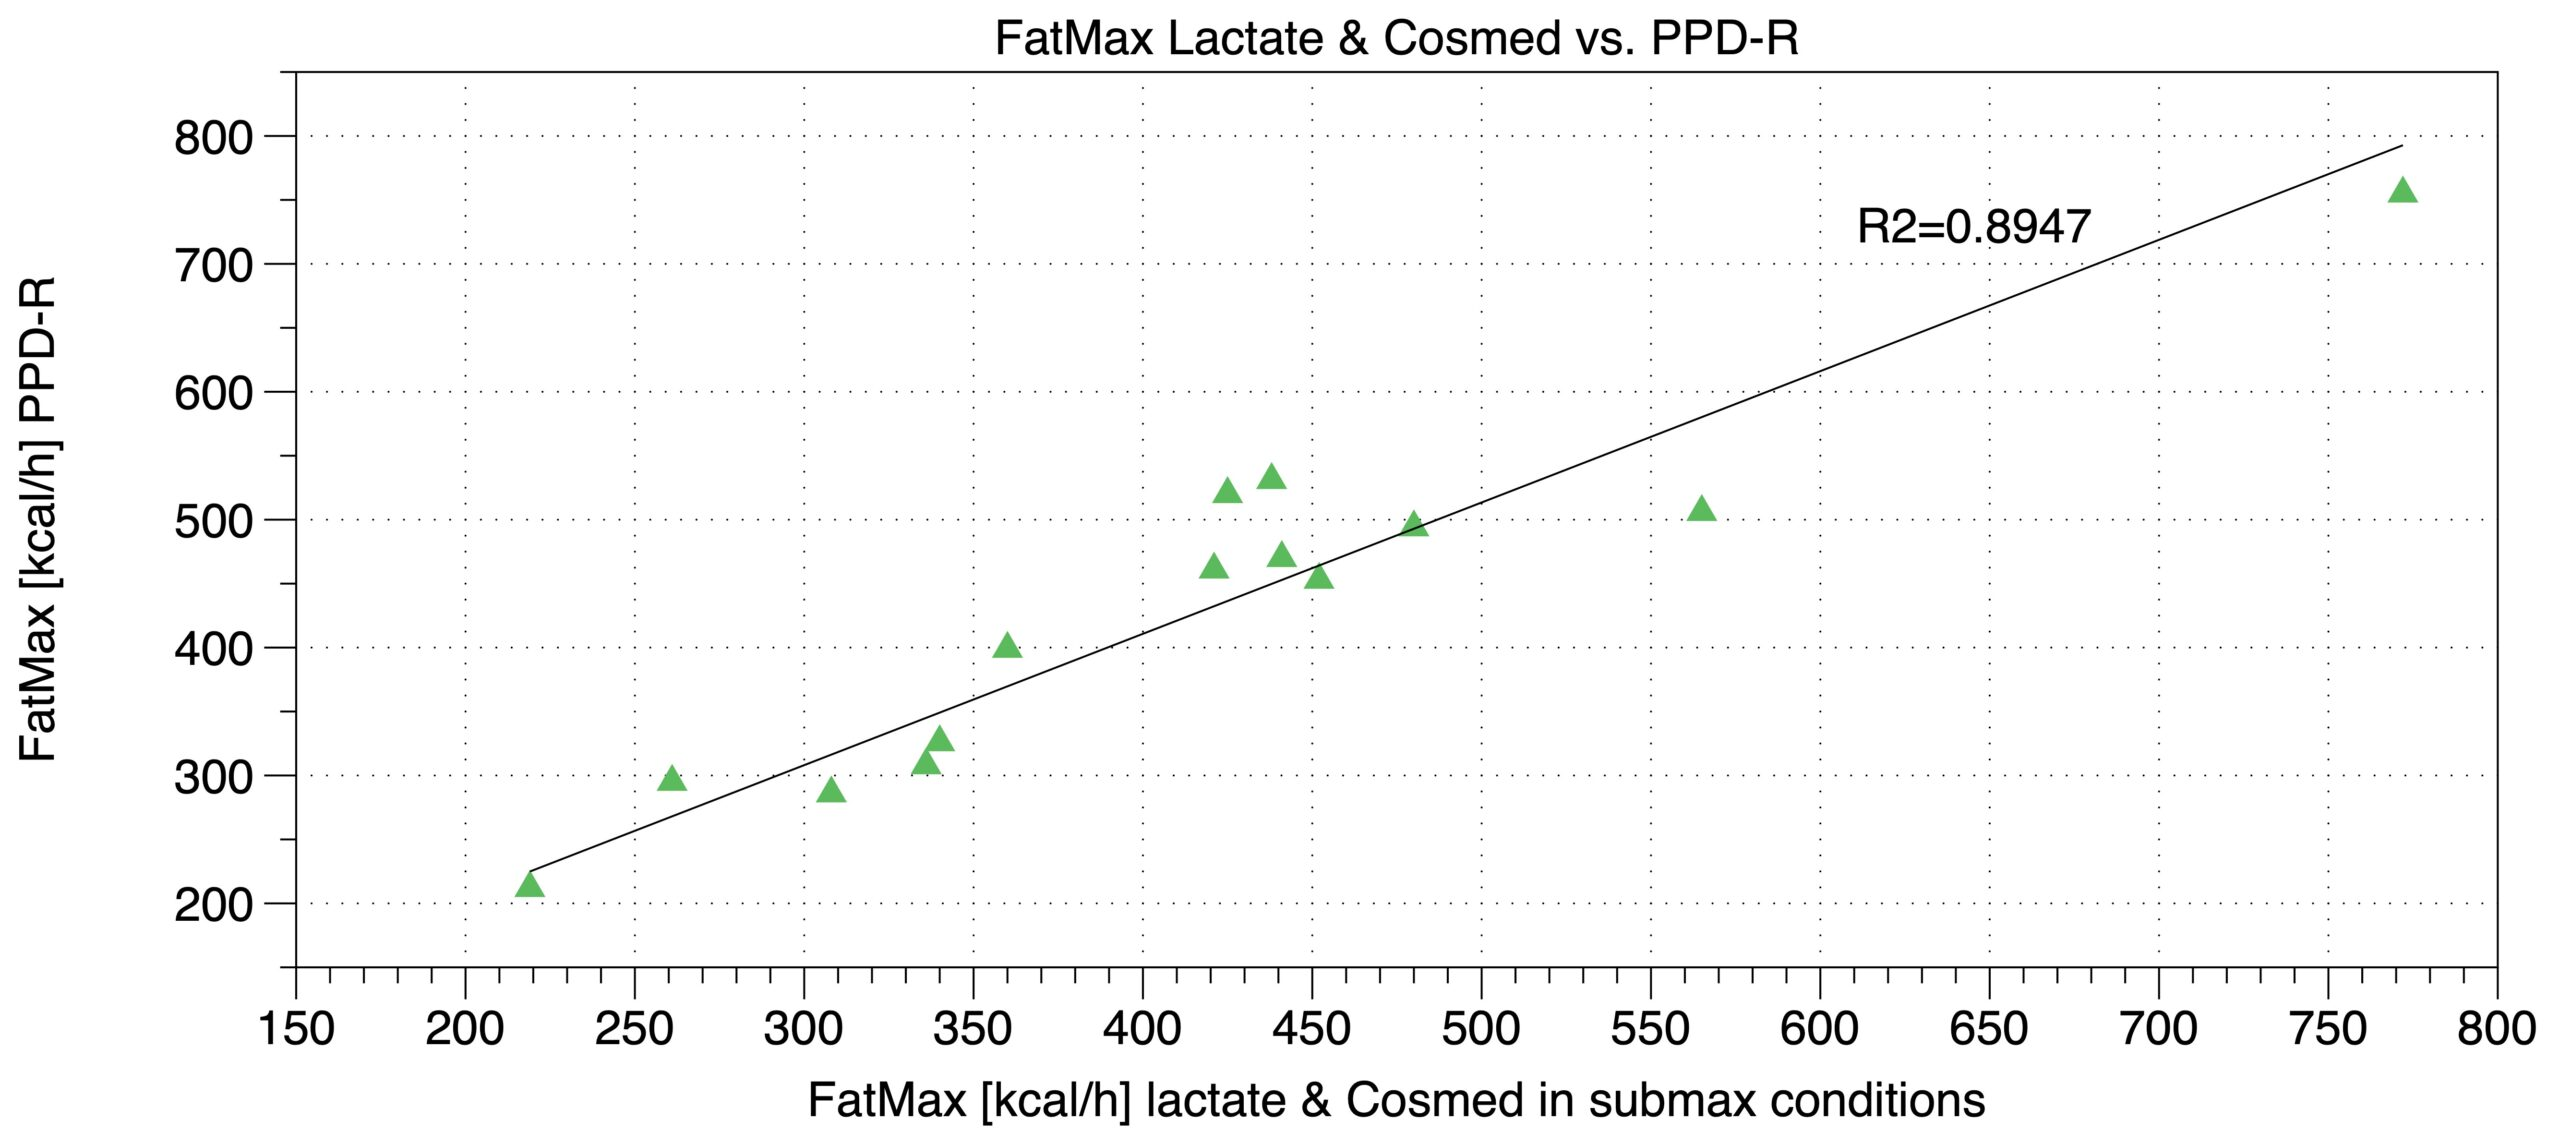 Validity of the FatMax in PPD-R. Comparing PPD-R results (y-axis) with results based on VO2 and lactate measurements (x-axis).